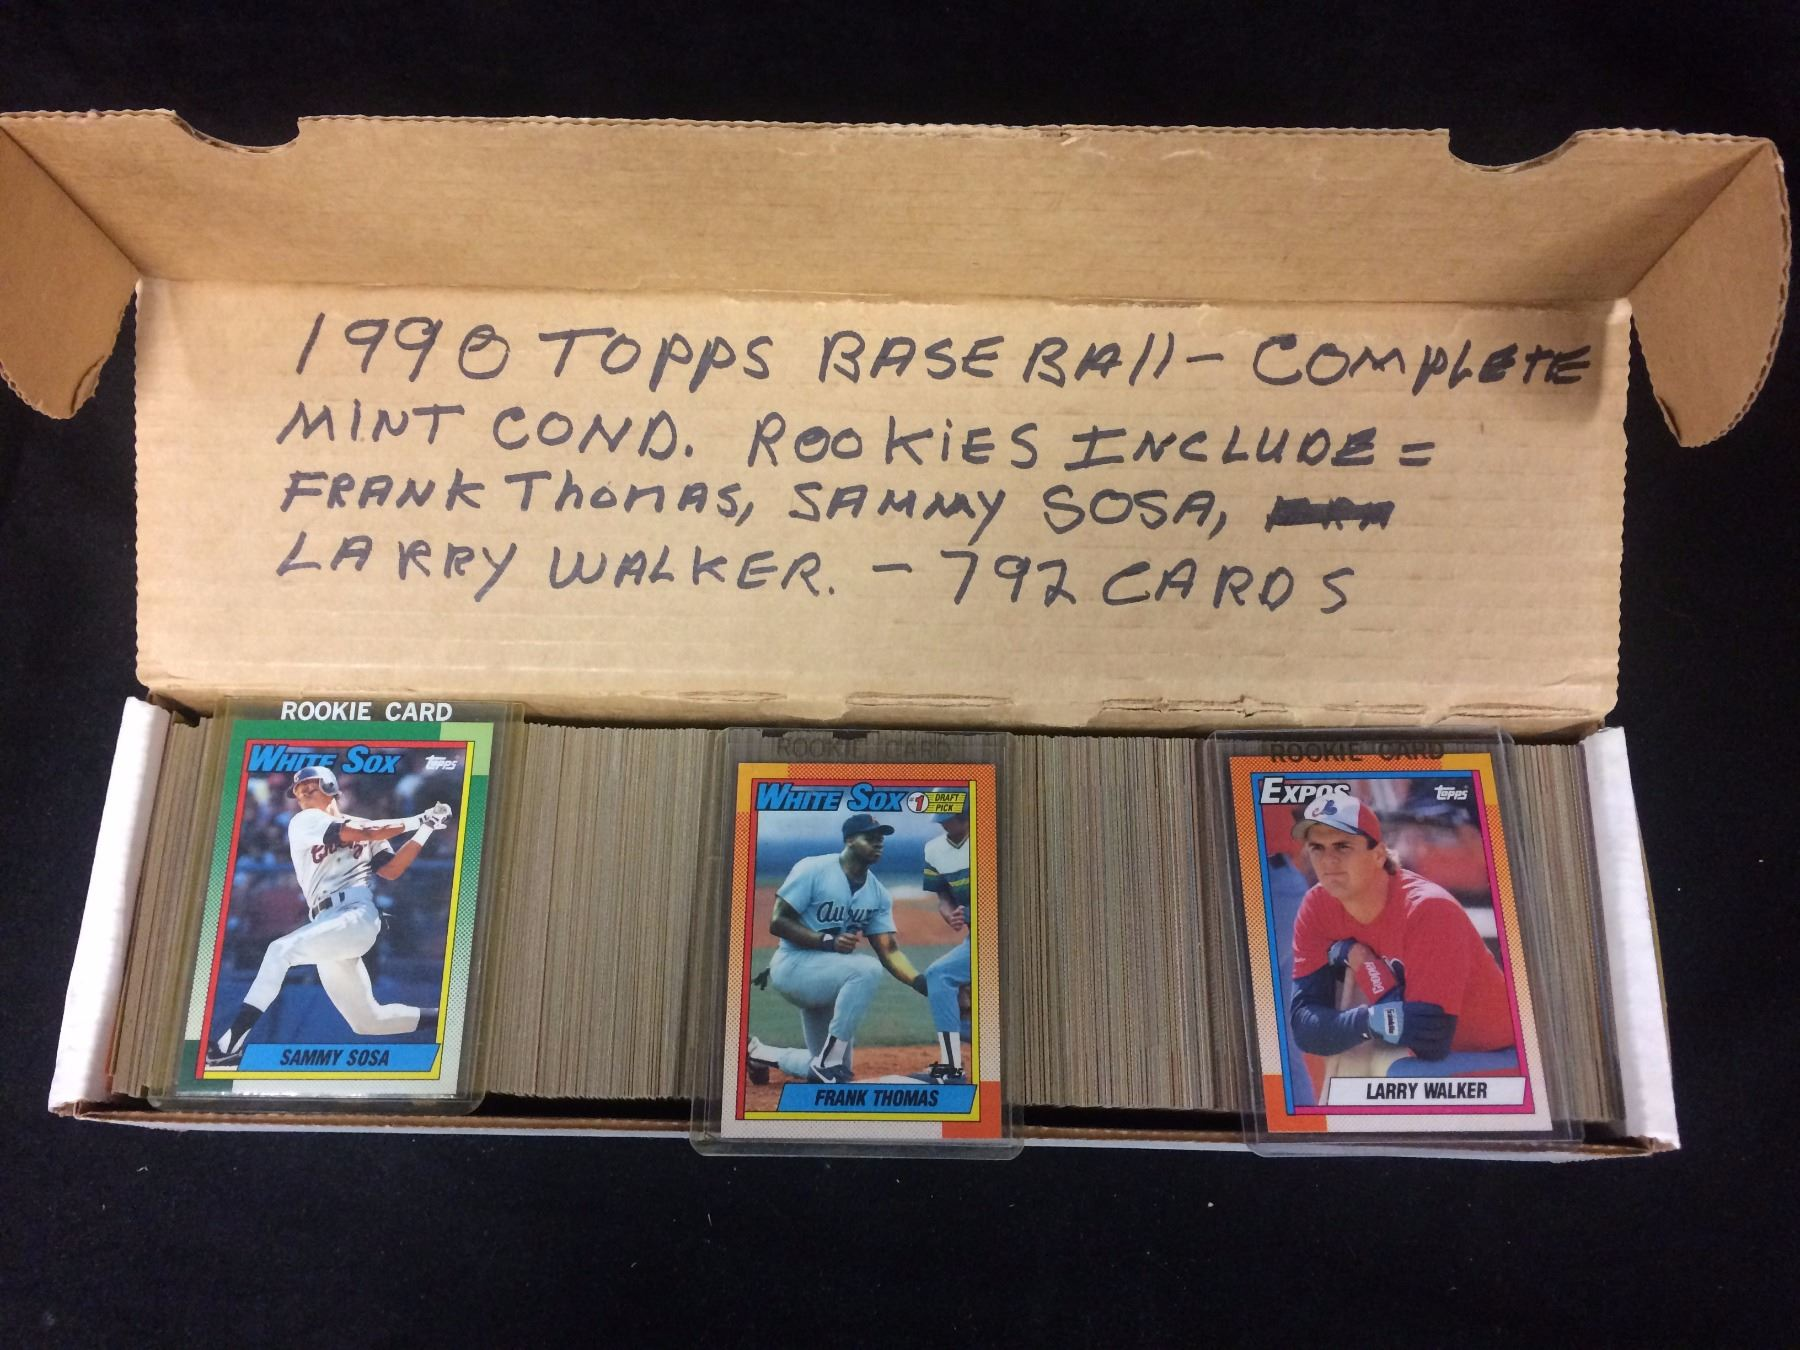 1990 Topps Baseball Cards Complete Set Mint Condition 792 Cards